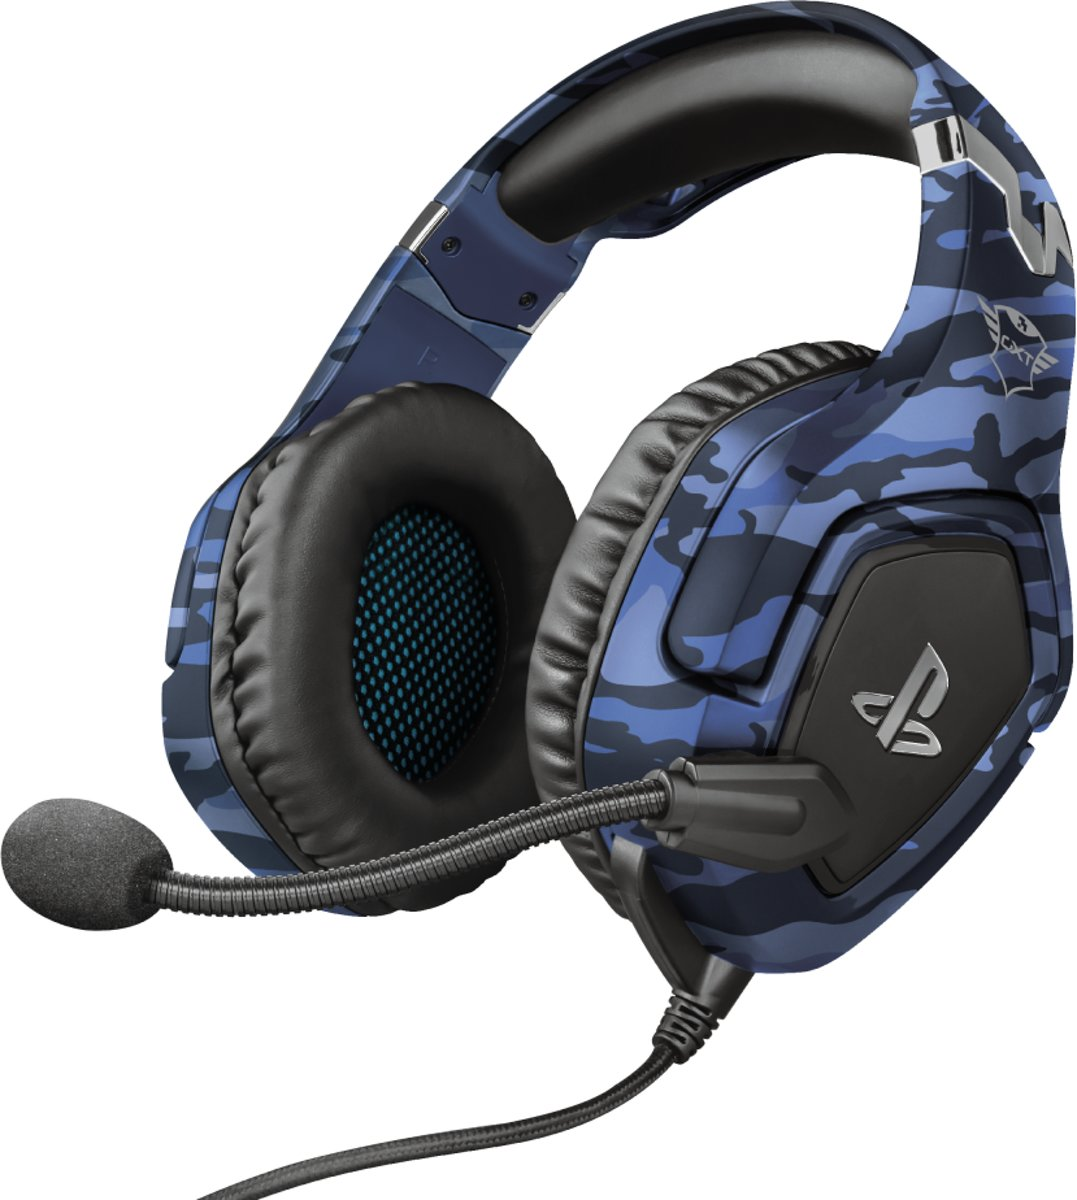 GXT 488-B Forze - PS4 Official Licensed Game Headset - Camo Blauw kopen